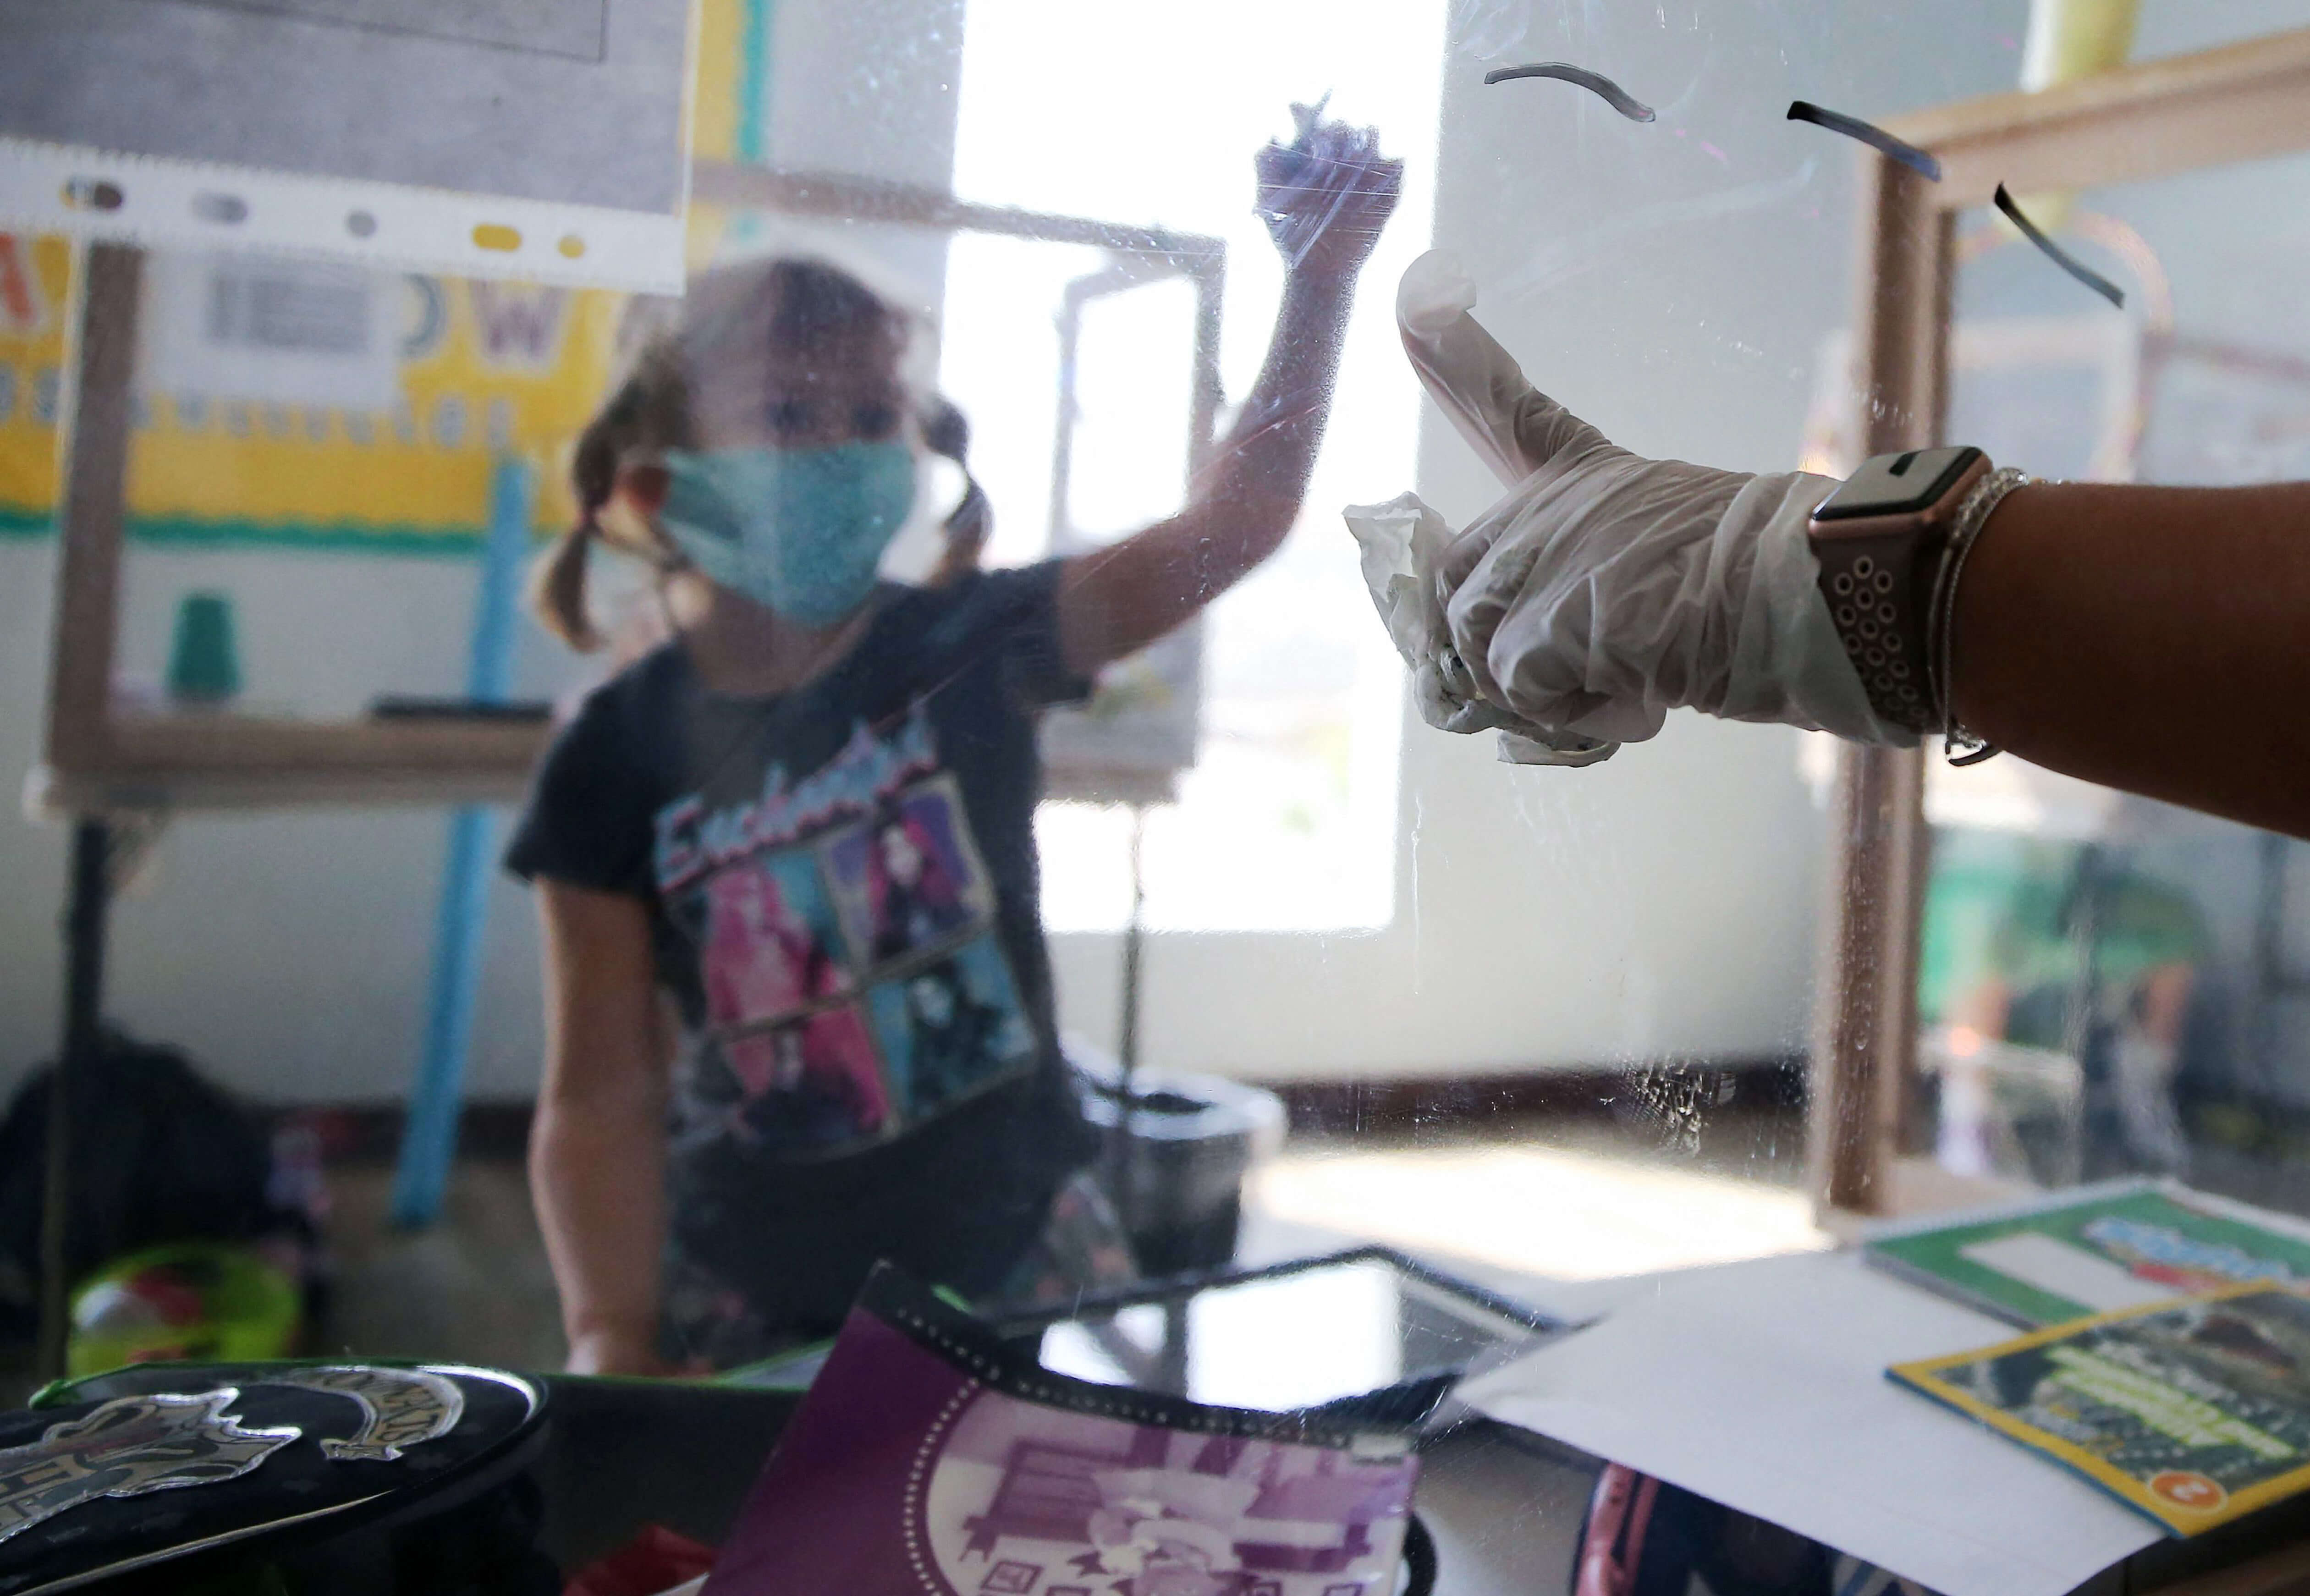 Los Angeles agrees to reopen schools in April